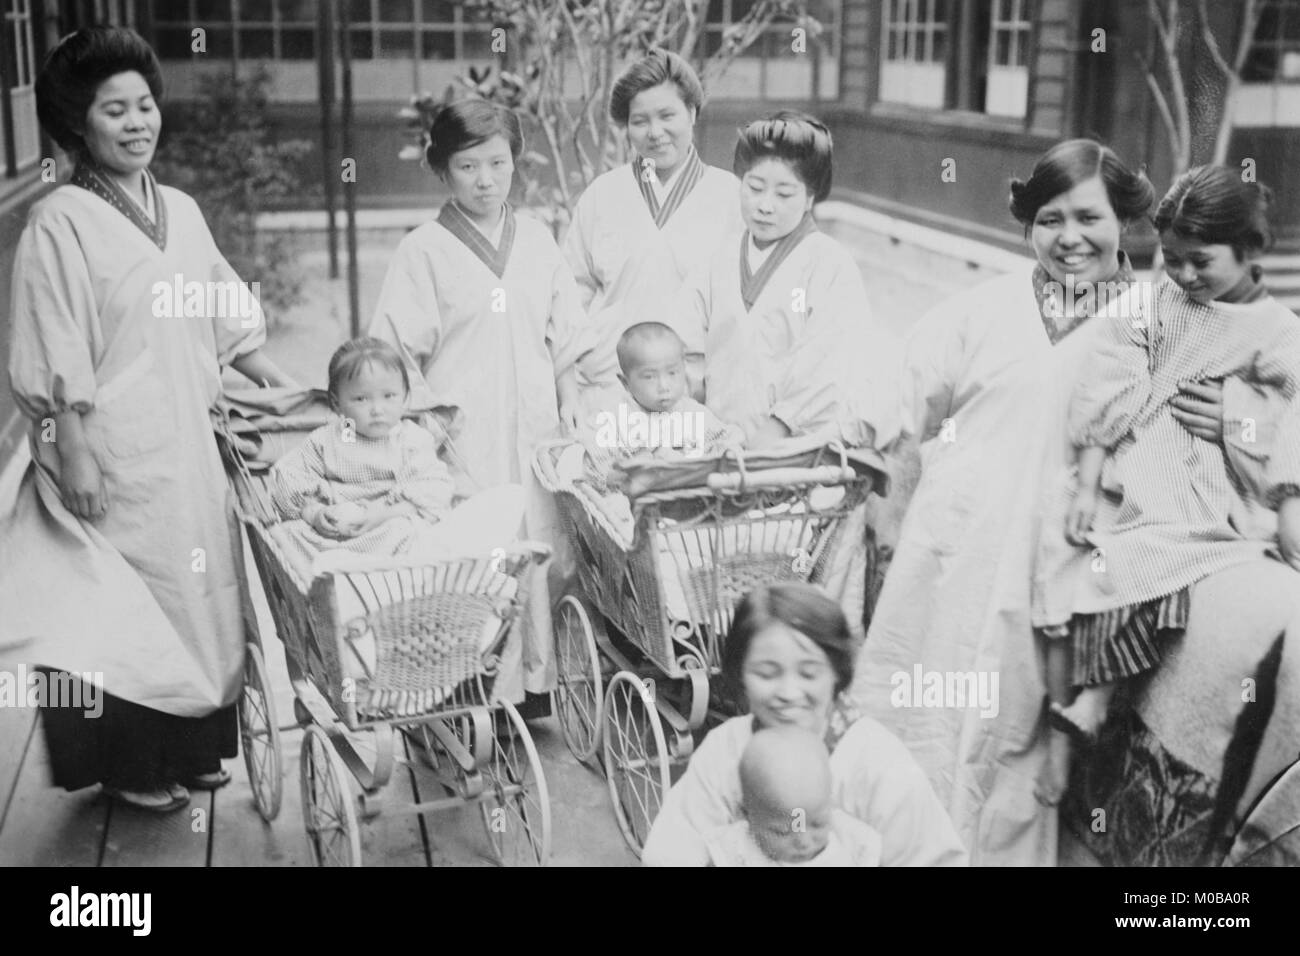 Japanese Mothers with their infants in Perambulators or Baby Carriages - Stock Image